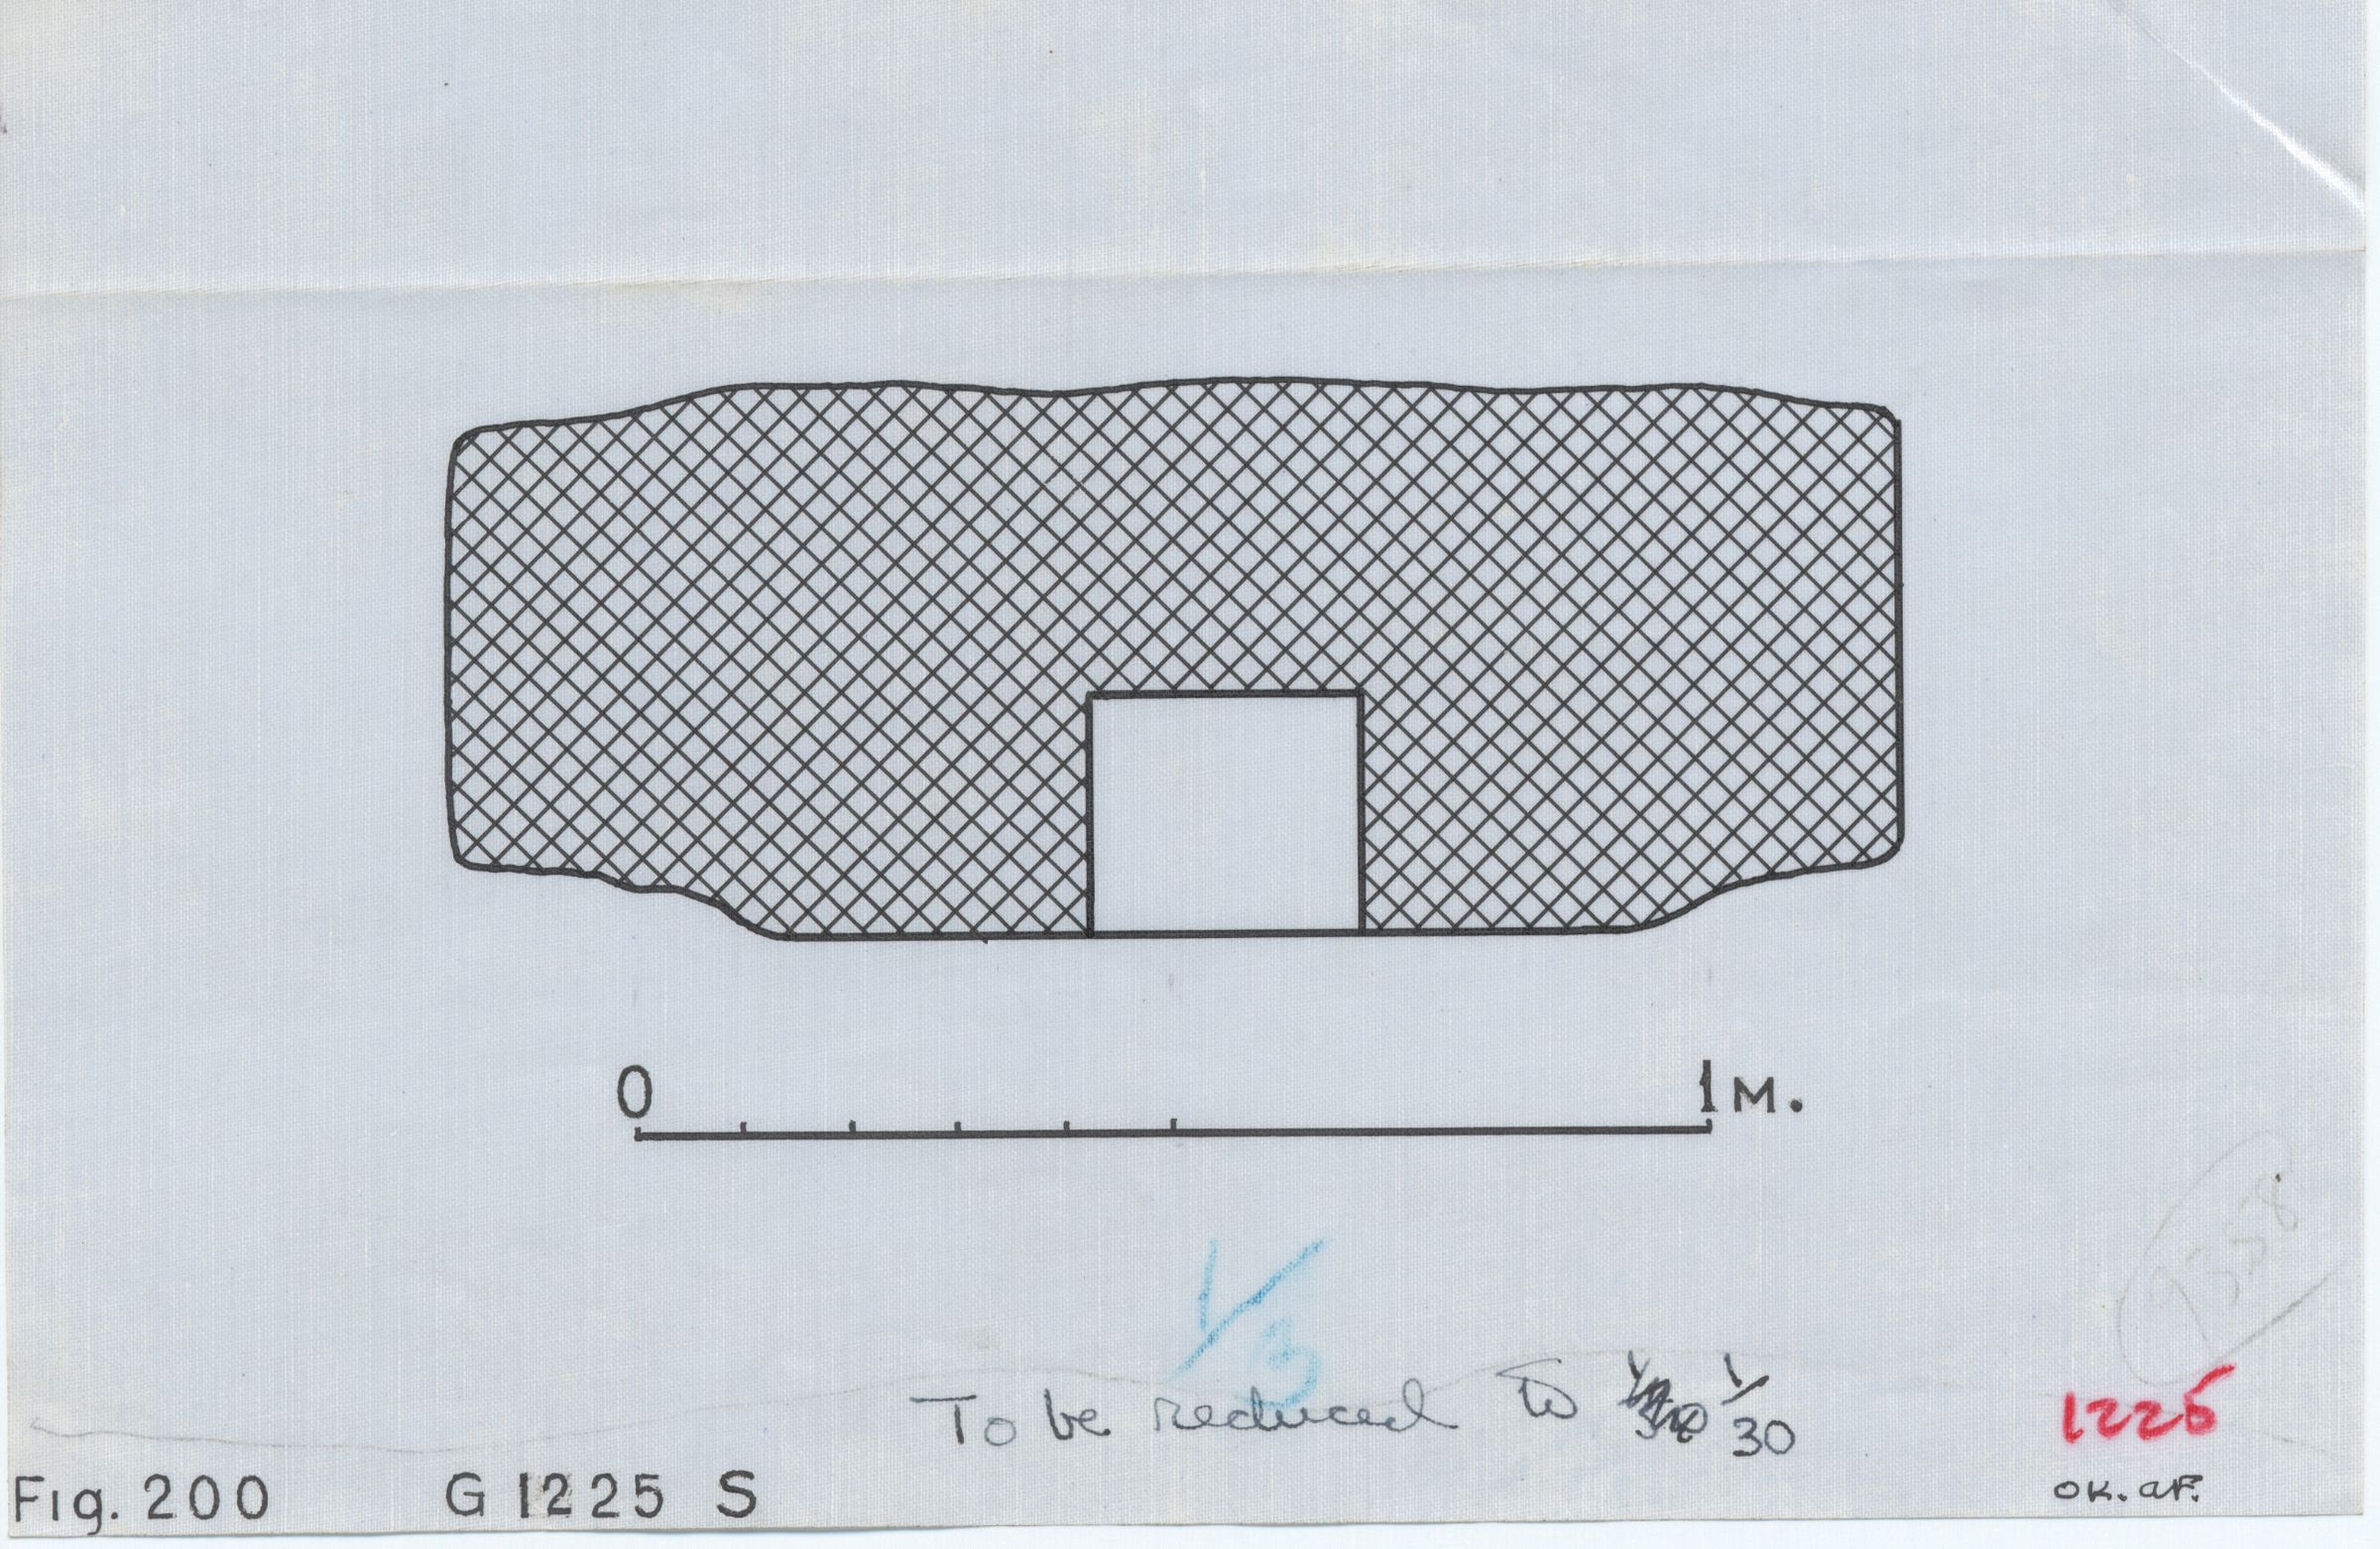 Maps and plans: G 1225, Plan of south niche